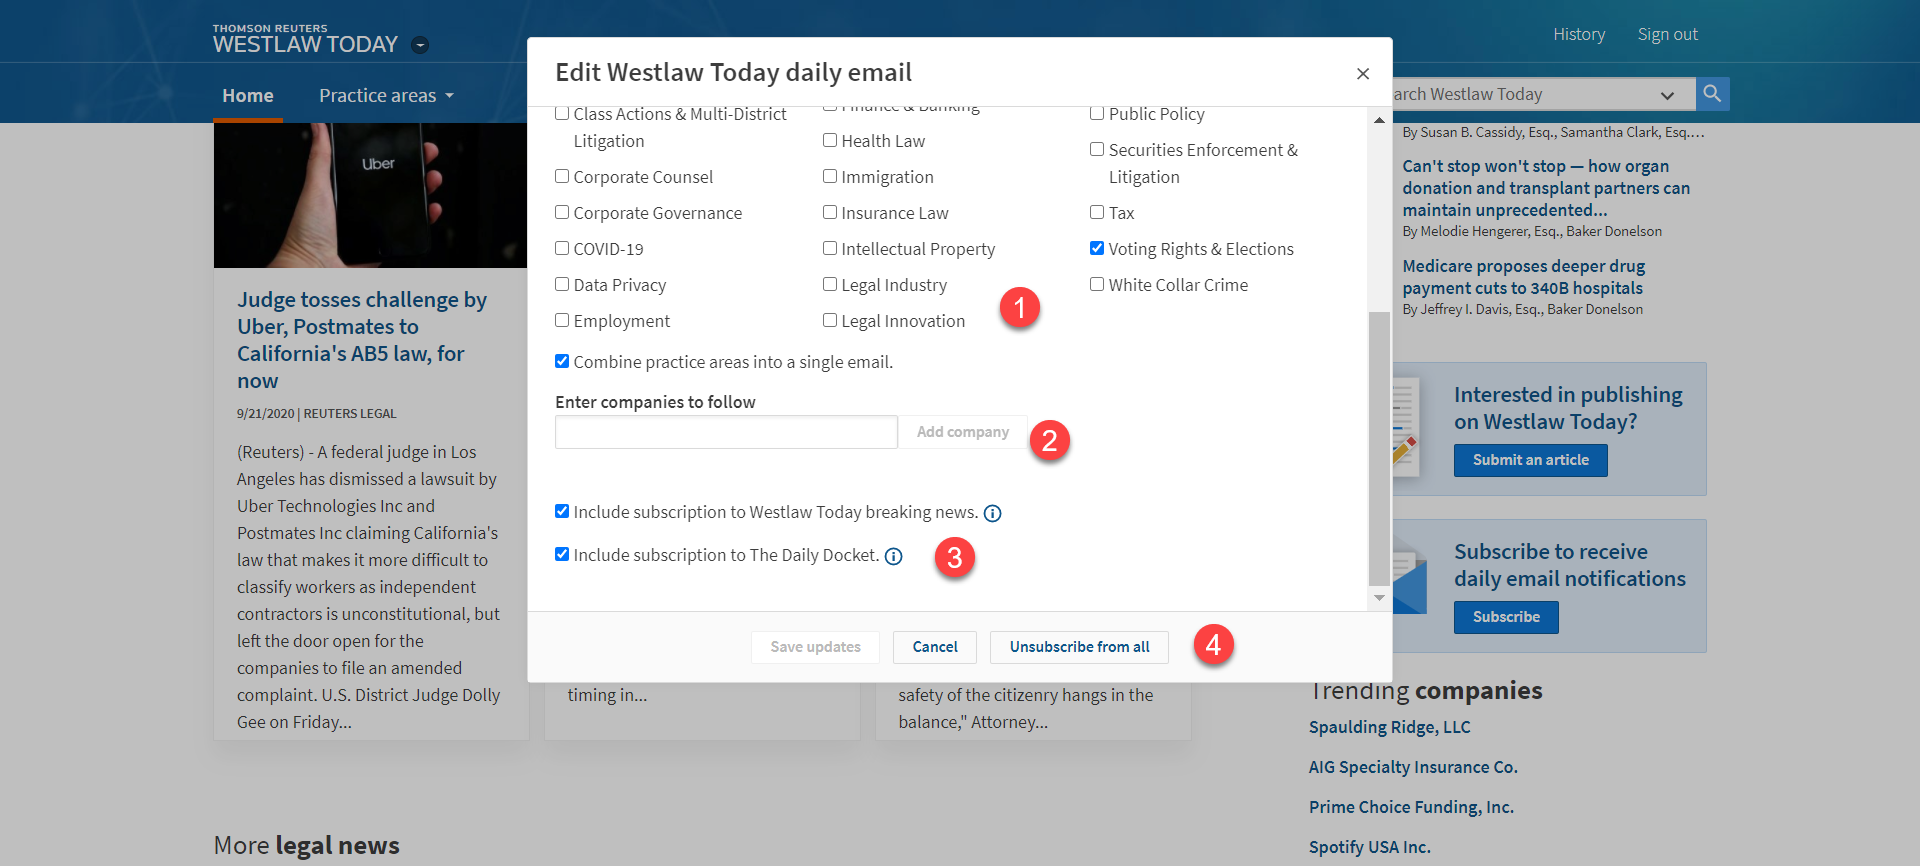 Westlaw Today Email Newsletter Screen Shot